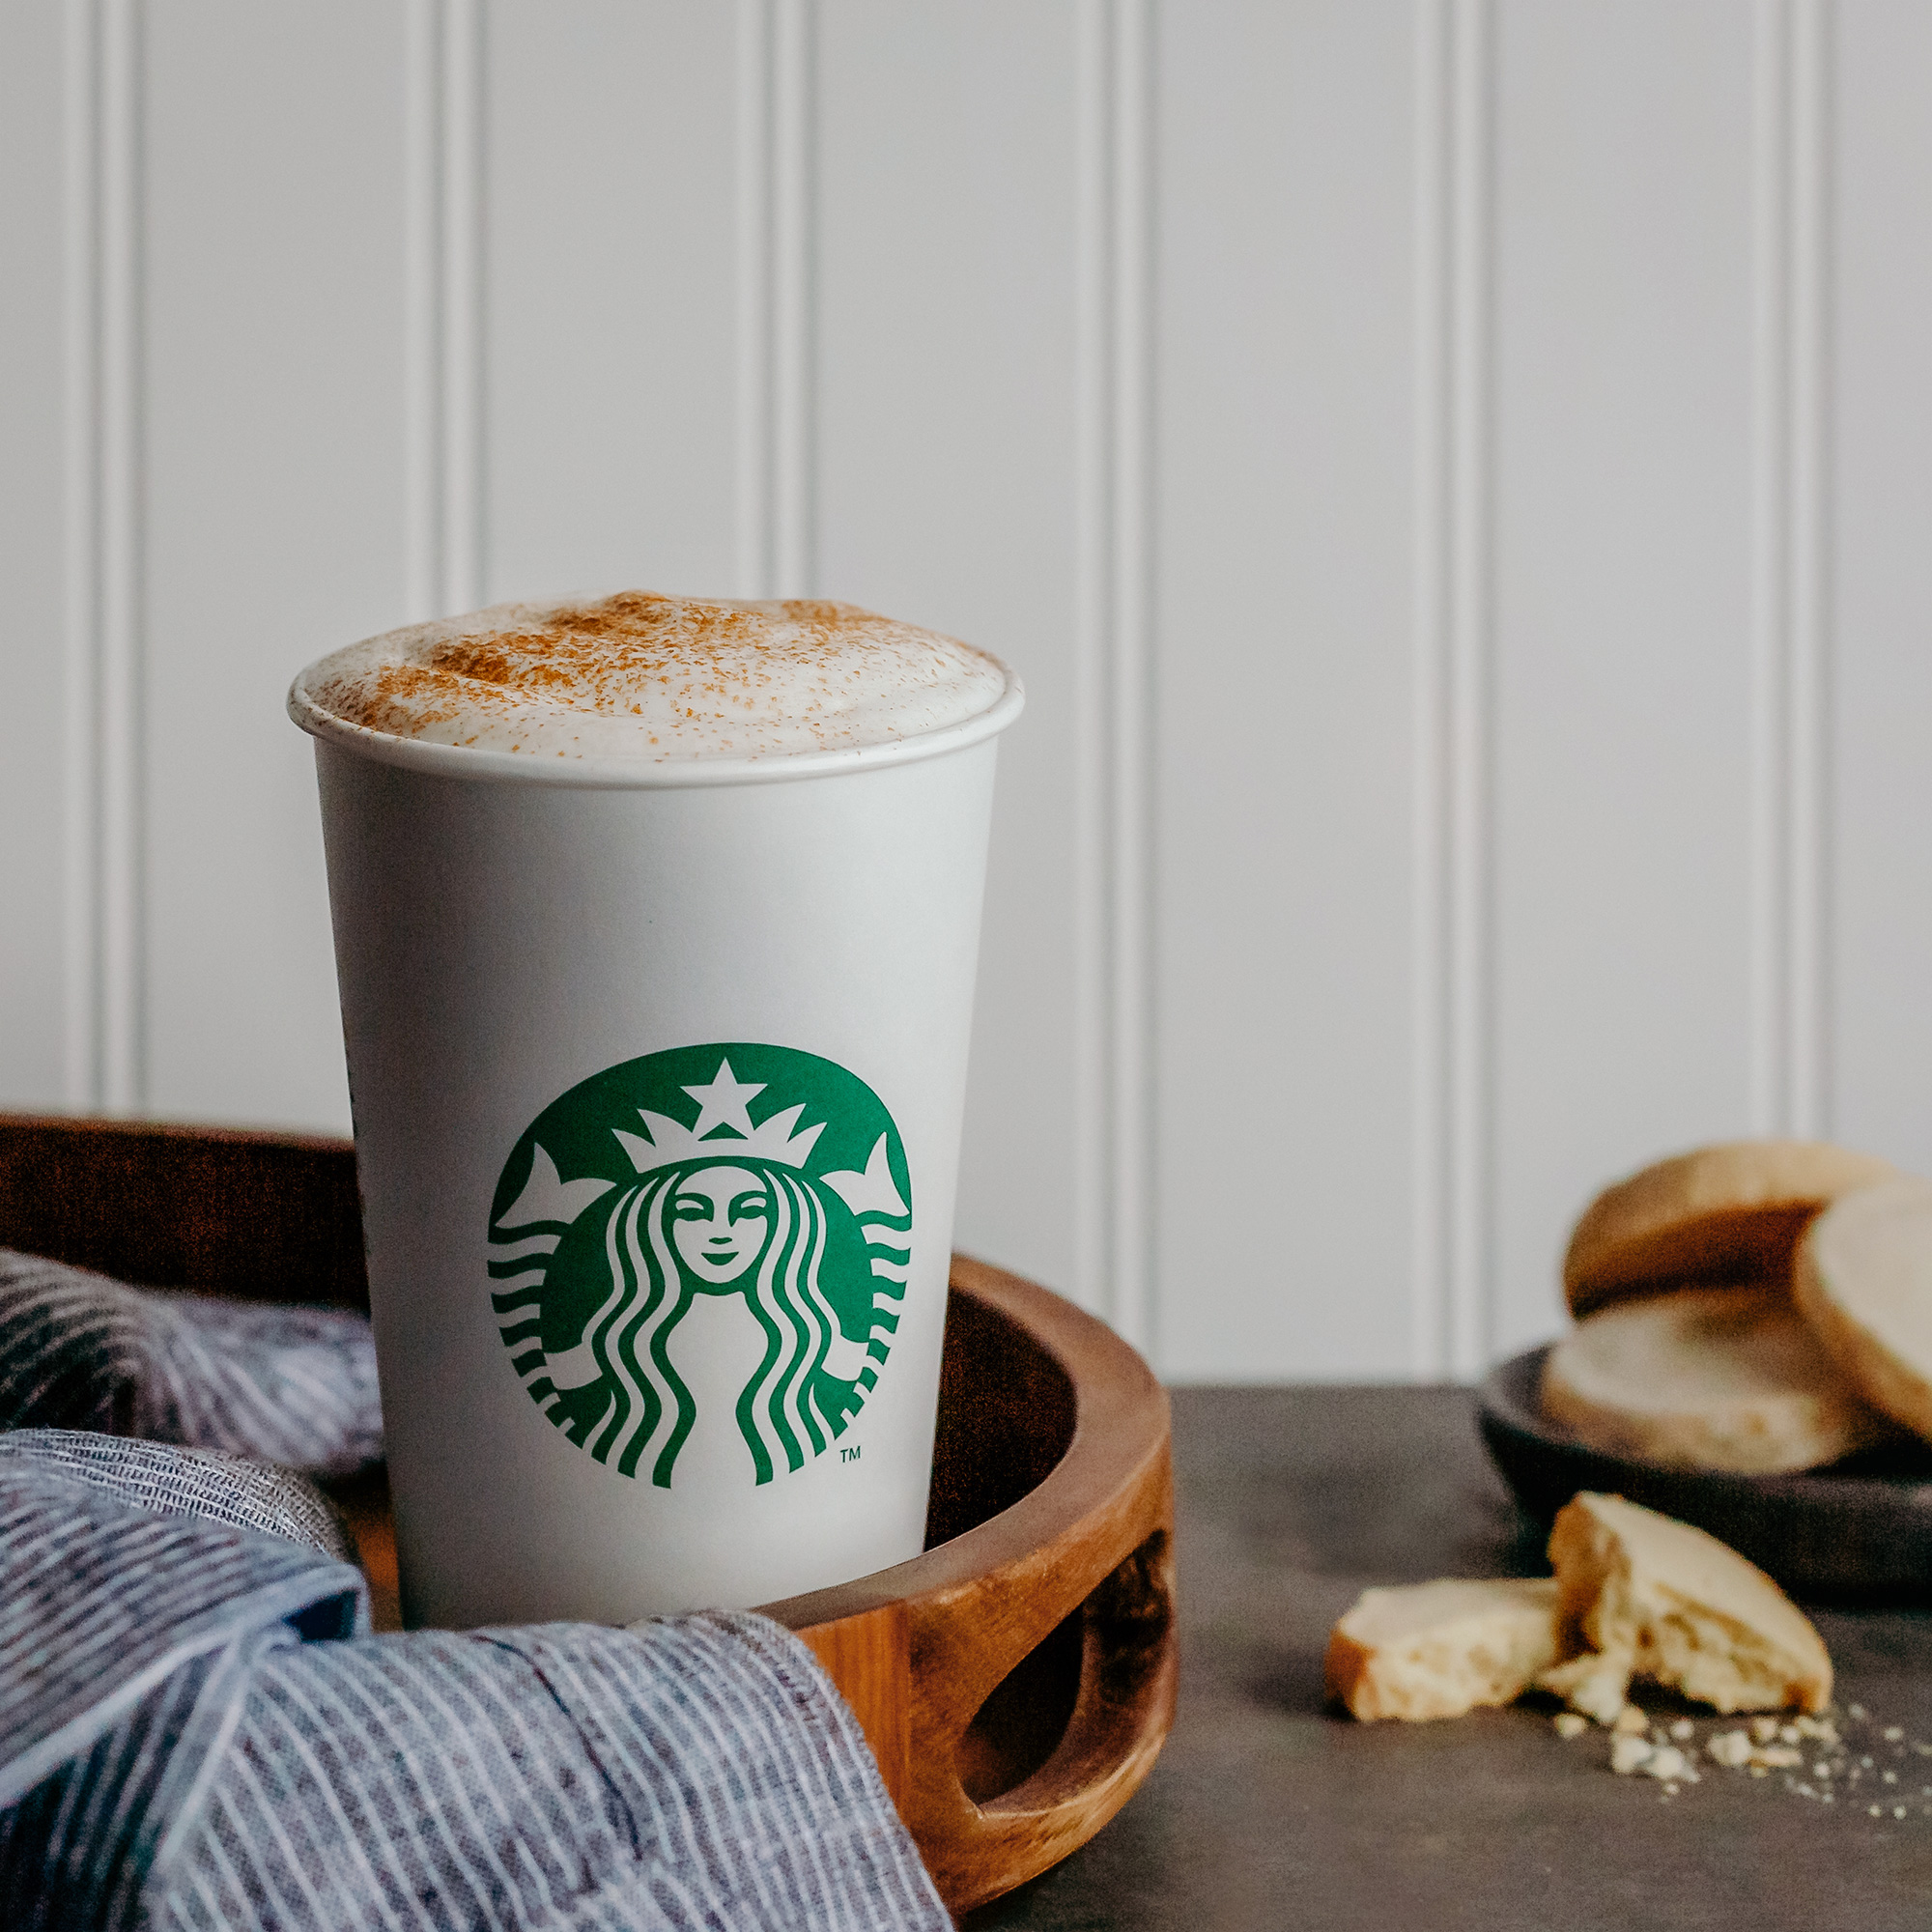 We Tried Starbucks' New Cinnamon Shortbread Latte and It Tastes Like Cookie Butter